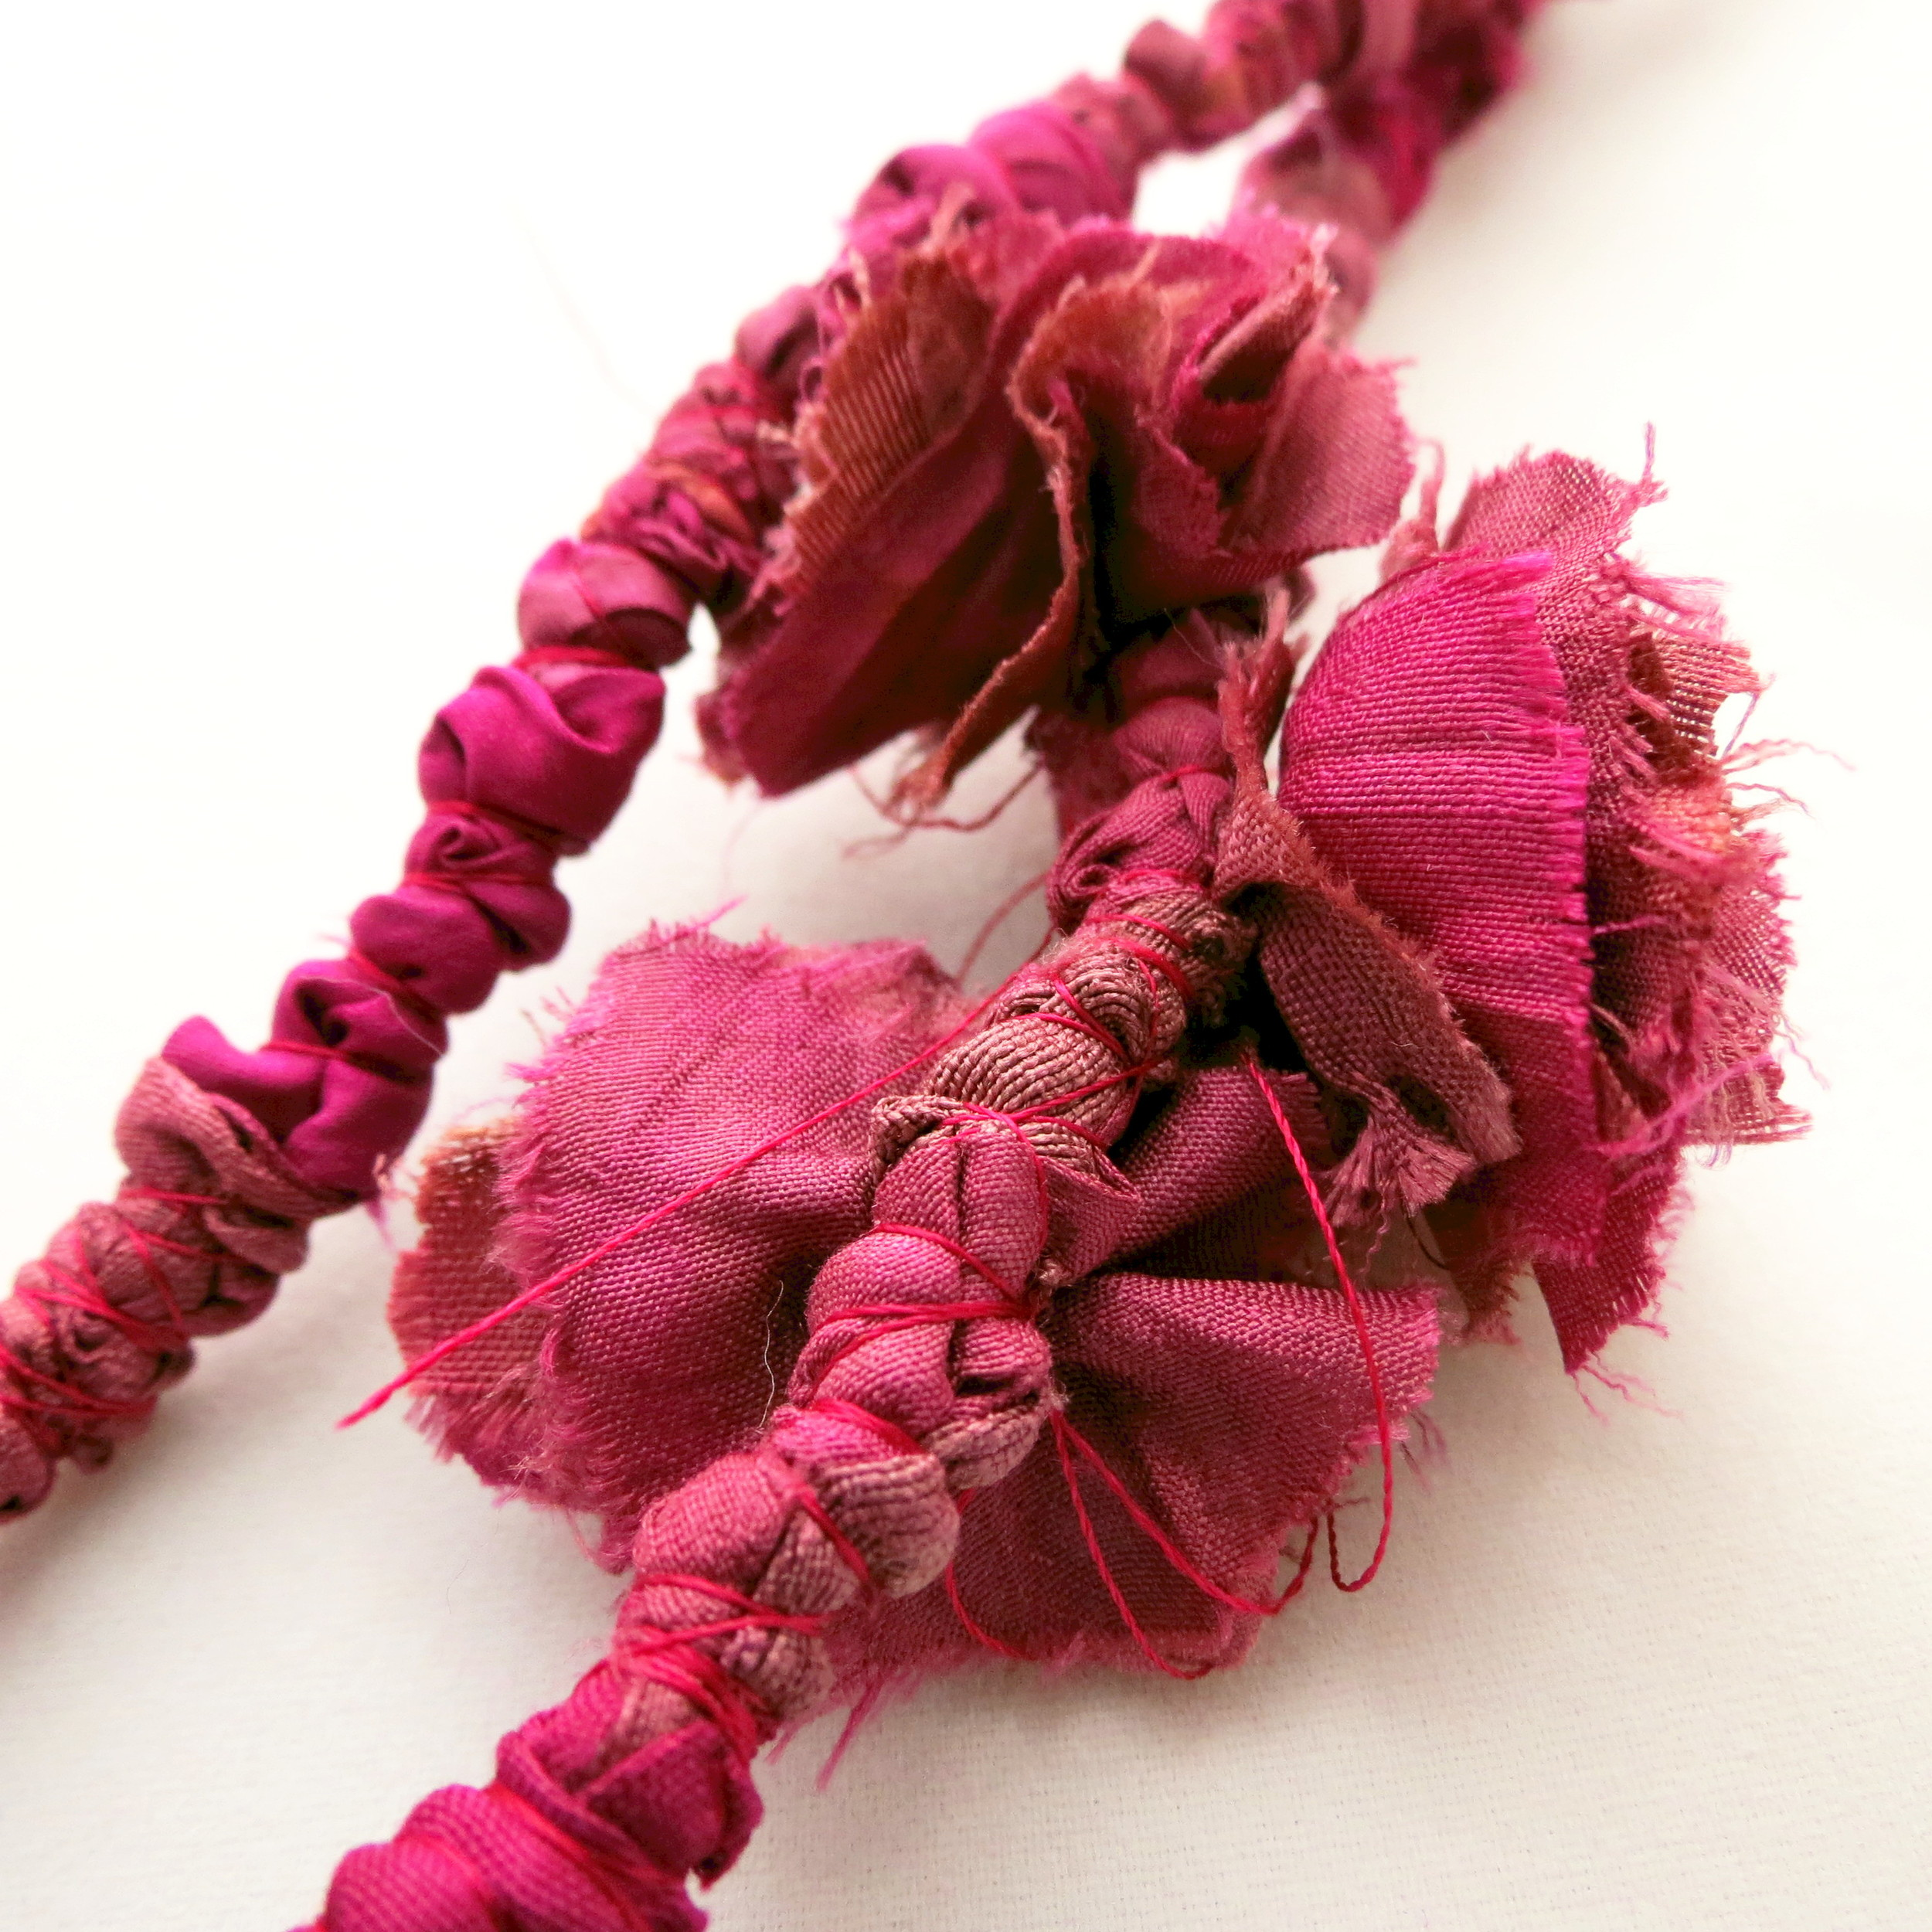 Maala – Francesca Cecchini (2014), necklace (detail) // Materials: repurposed sari silk, silk thread.